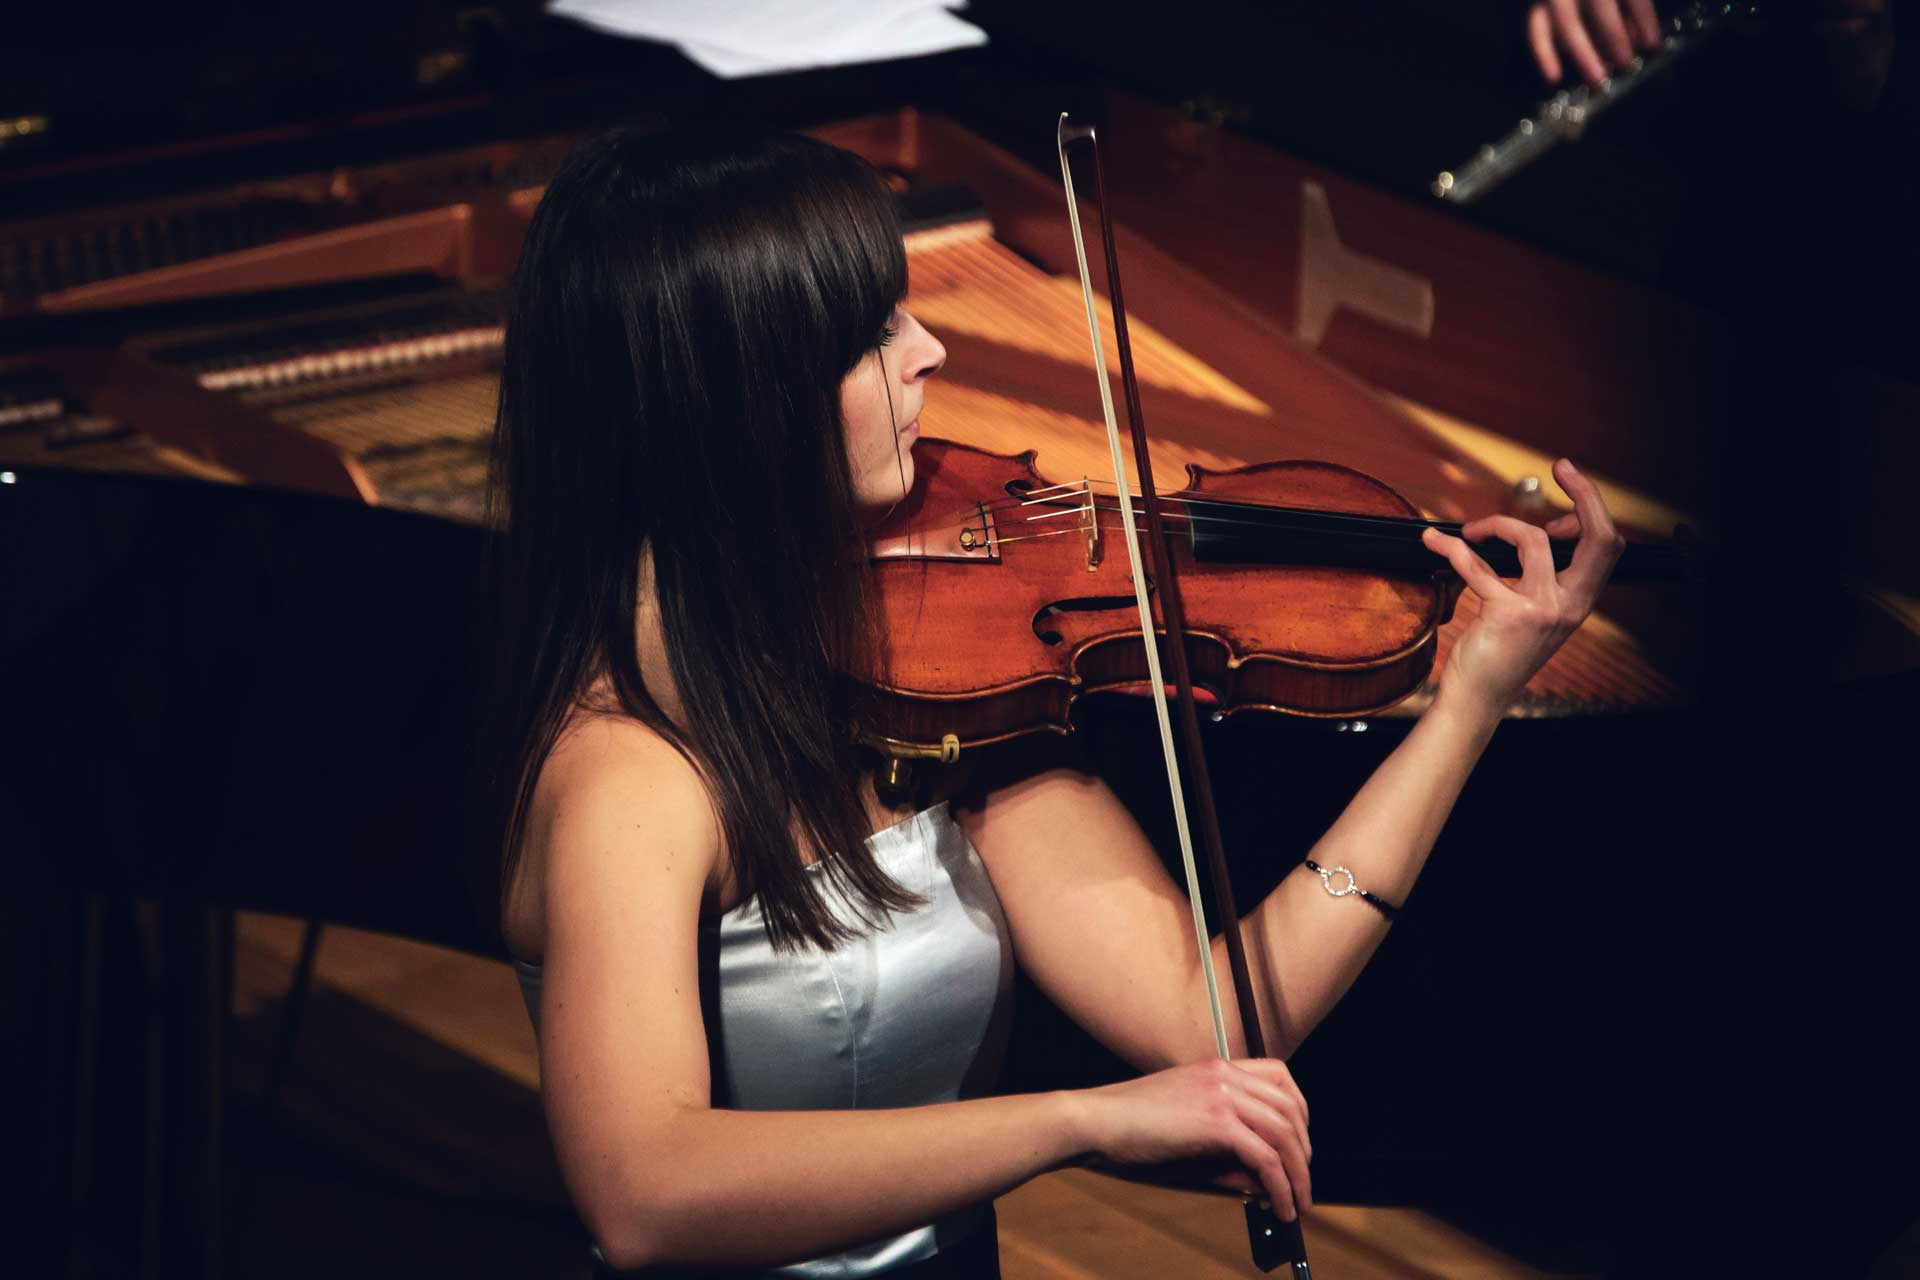 young woman in grey dress playing the violin in front of piano